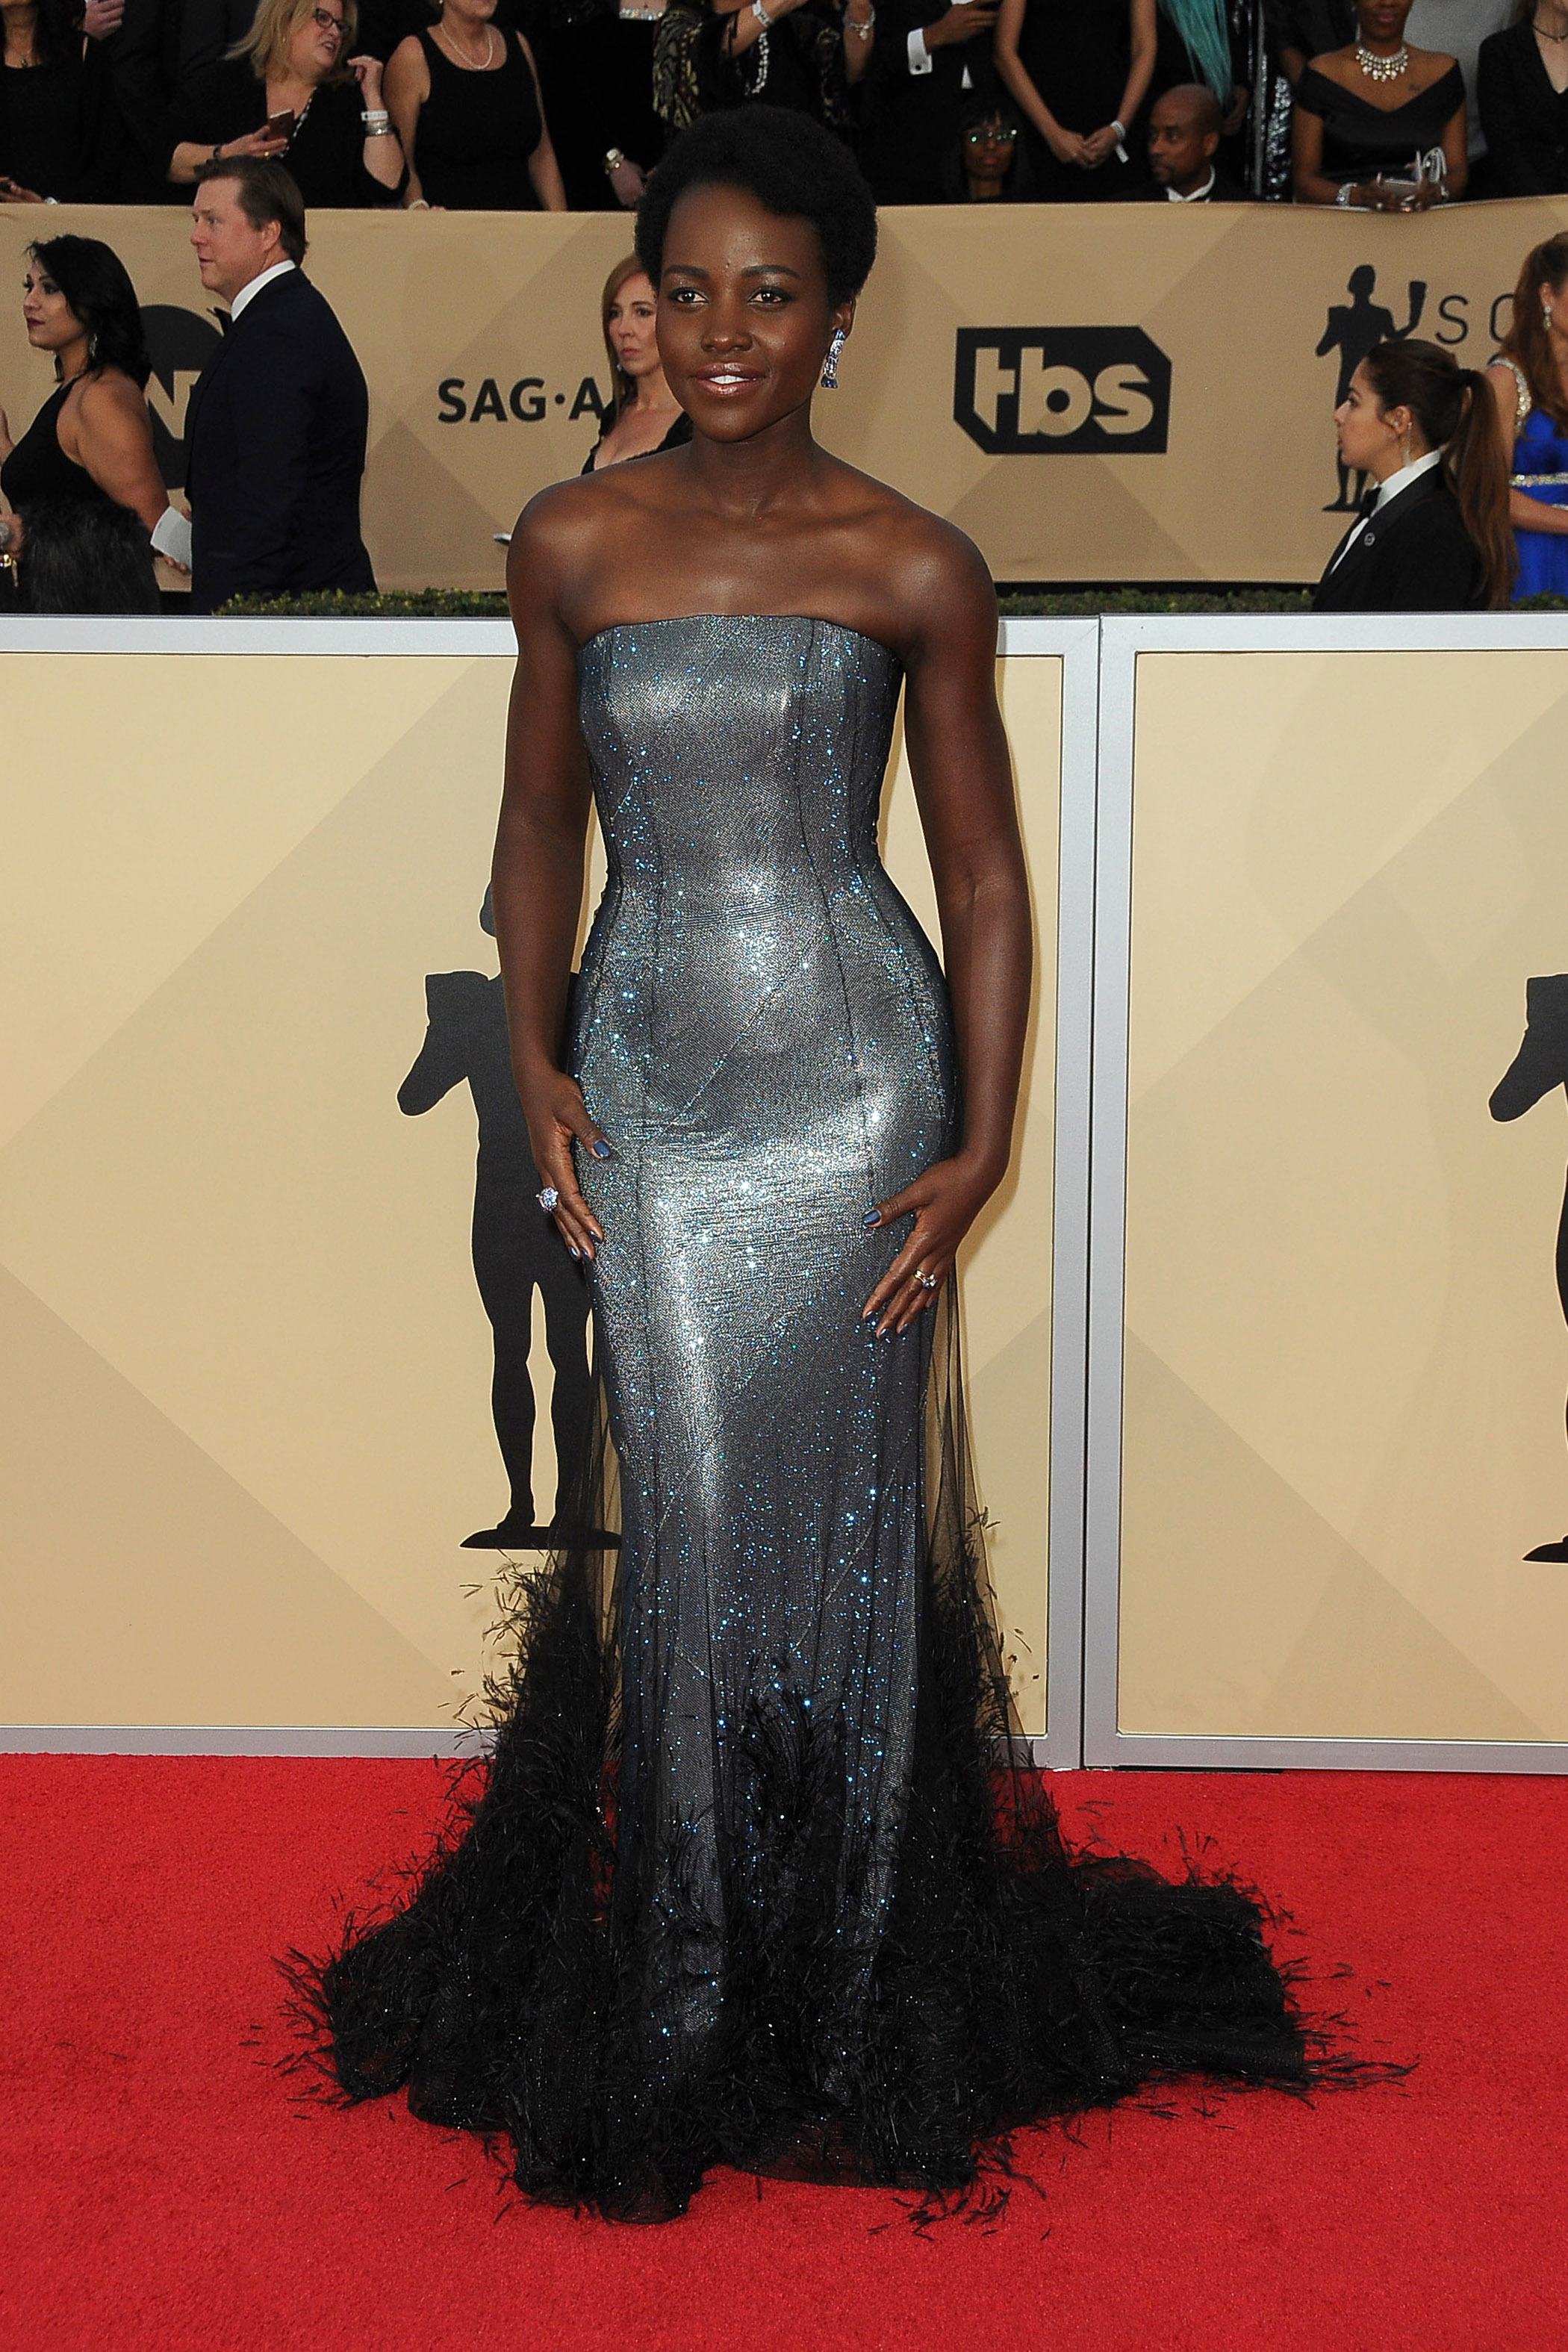 Arrivals for the 24th Annual Screen Actors Guild Awards, held at the Shrine Exposition Center in Los Angeles, California <P> Pictured: Lupita Nyongo <B>Ref: SPL1649120  210118  </B><BR/> Picture by: Splash News<BR/> </P><P> <B>Splash News and Pictures</B><BR/> Los Angeles:	310-821-2666<BR/> New York:	212-619-2666<BR/> London:	870-934-2666<BR/> <span id=